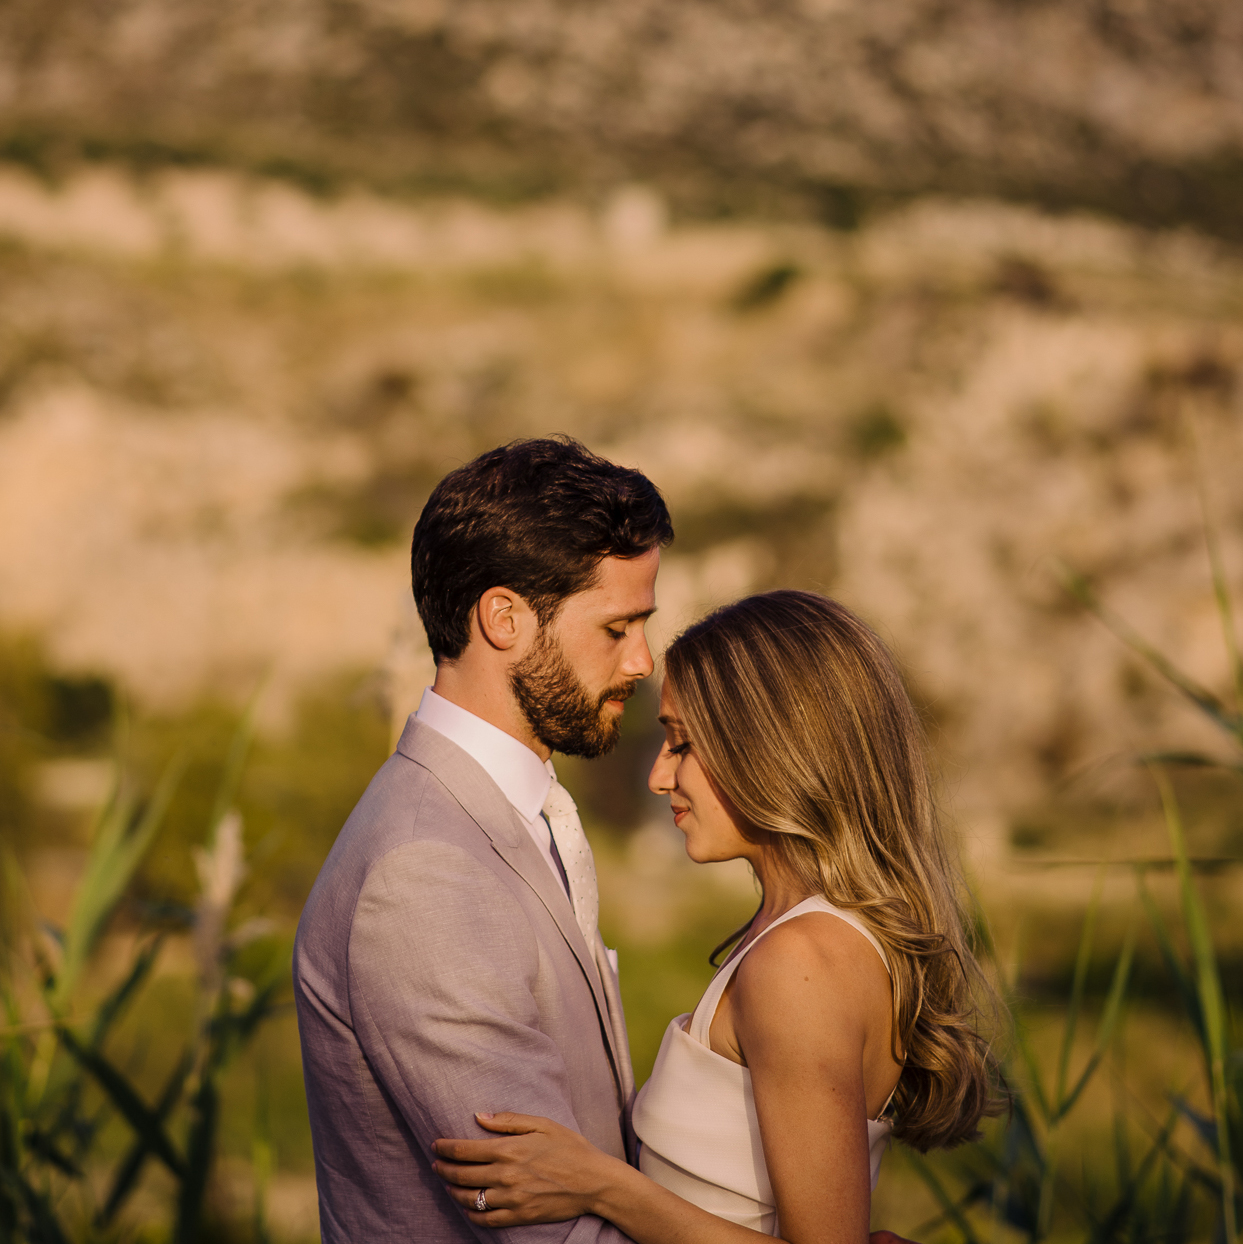 beckie_and_henry_may18_rachel_manns_sample_4_small_masseria_agnello_wedding_photographer.jpg